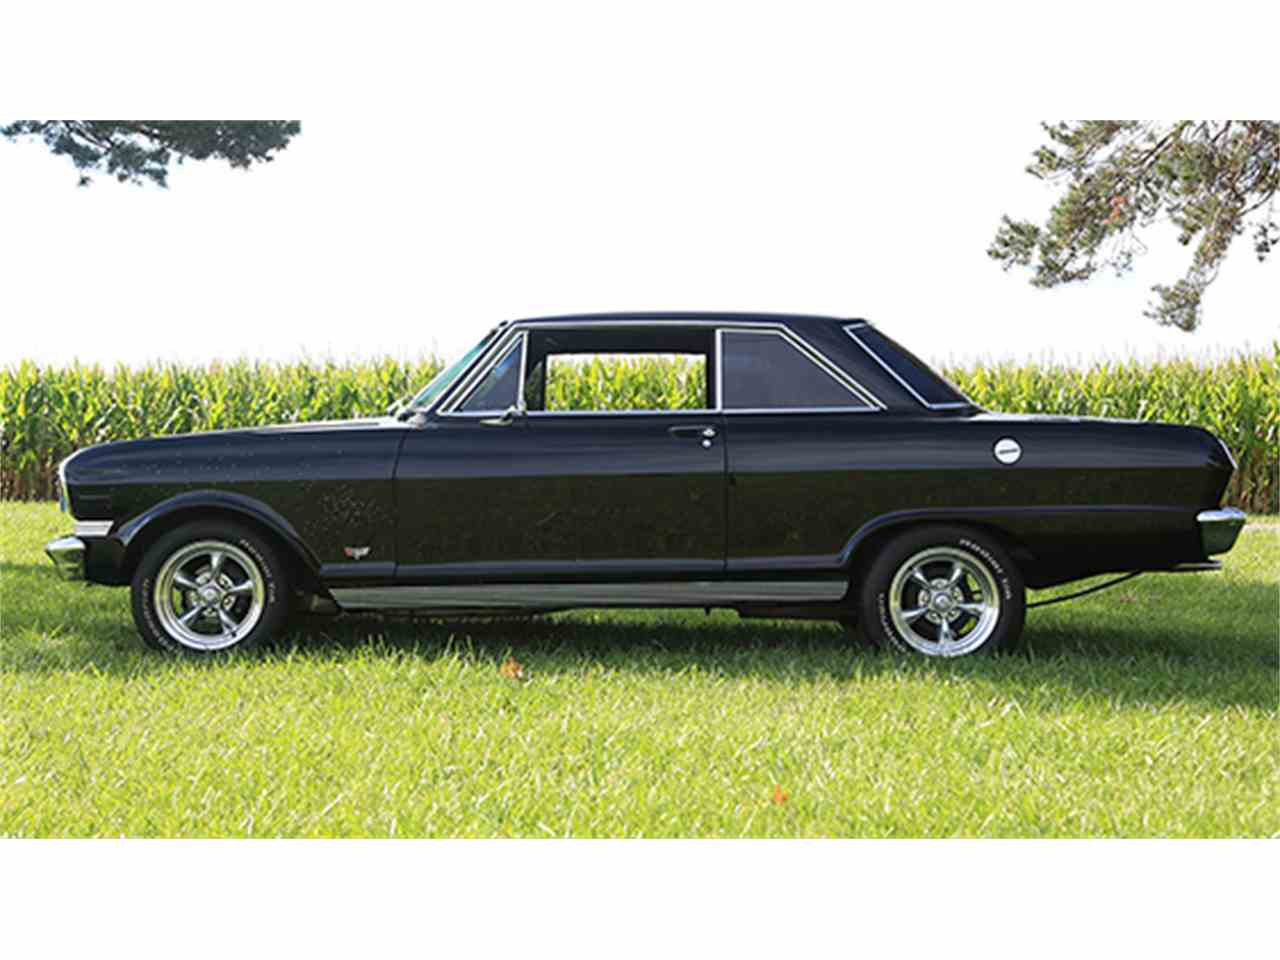 1963 chevrolet chevy ii nova ss sport coupe for sale classiccars large picture of 63 chevy ii nova ss sport coupe lmn3 sciox Choice Image